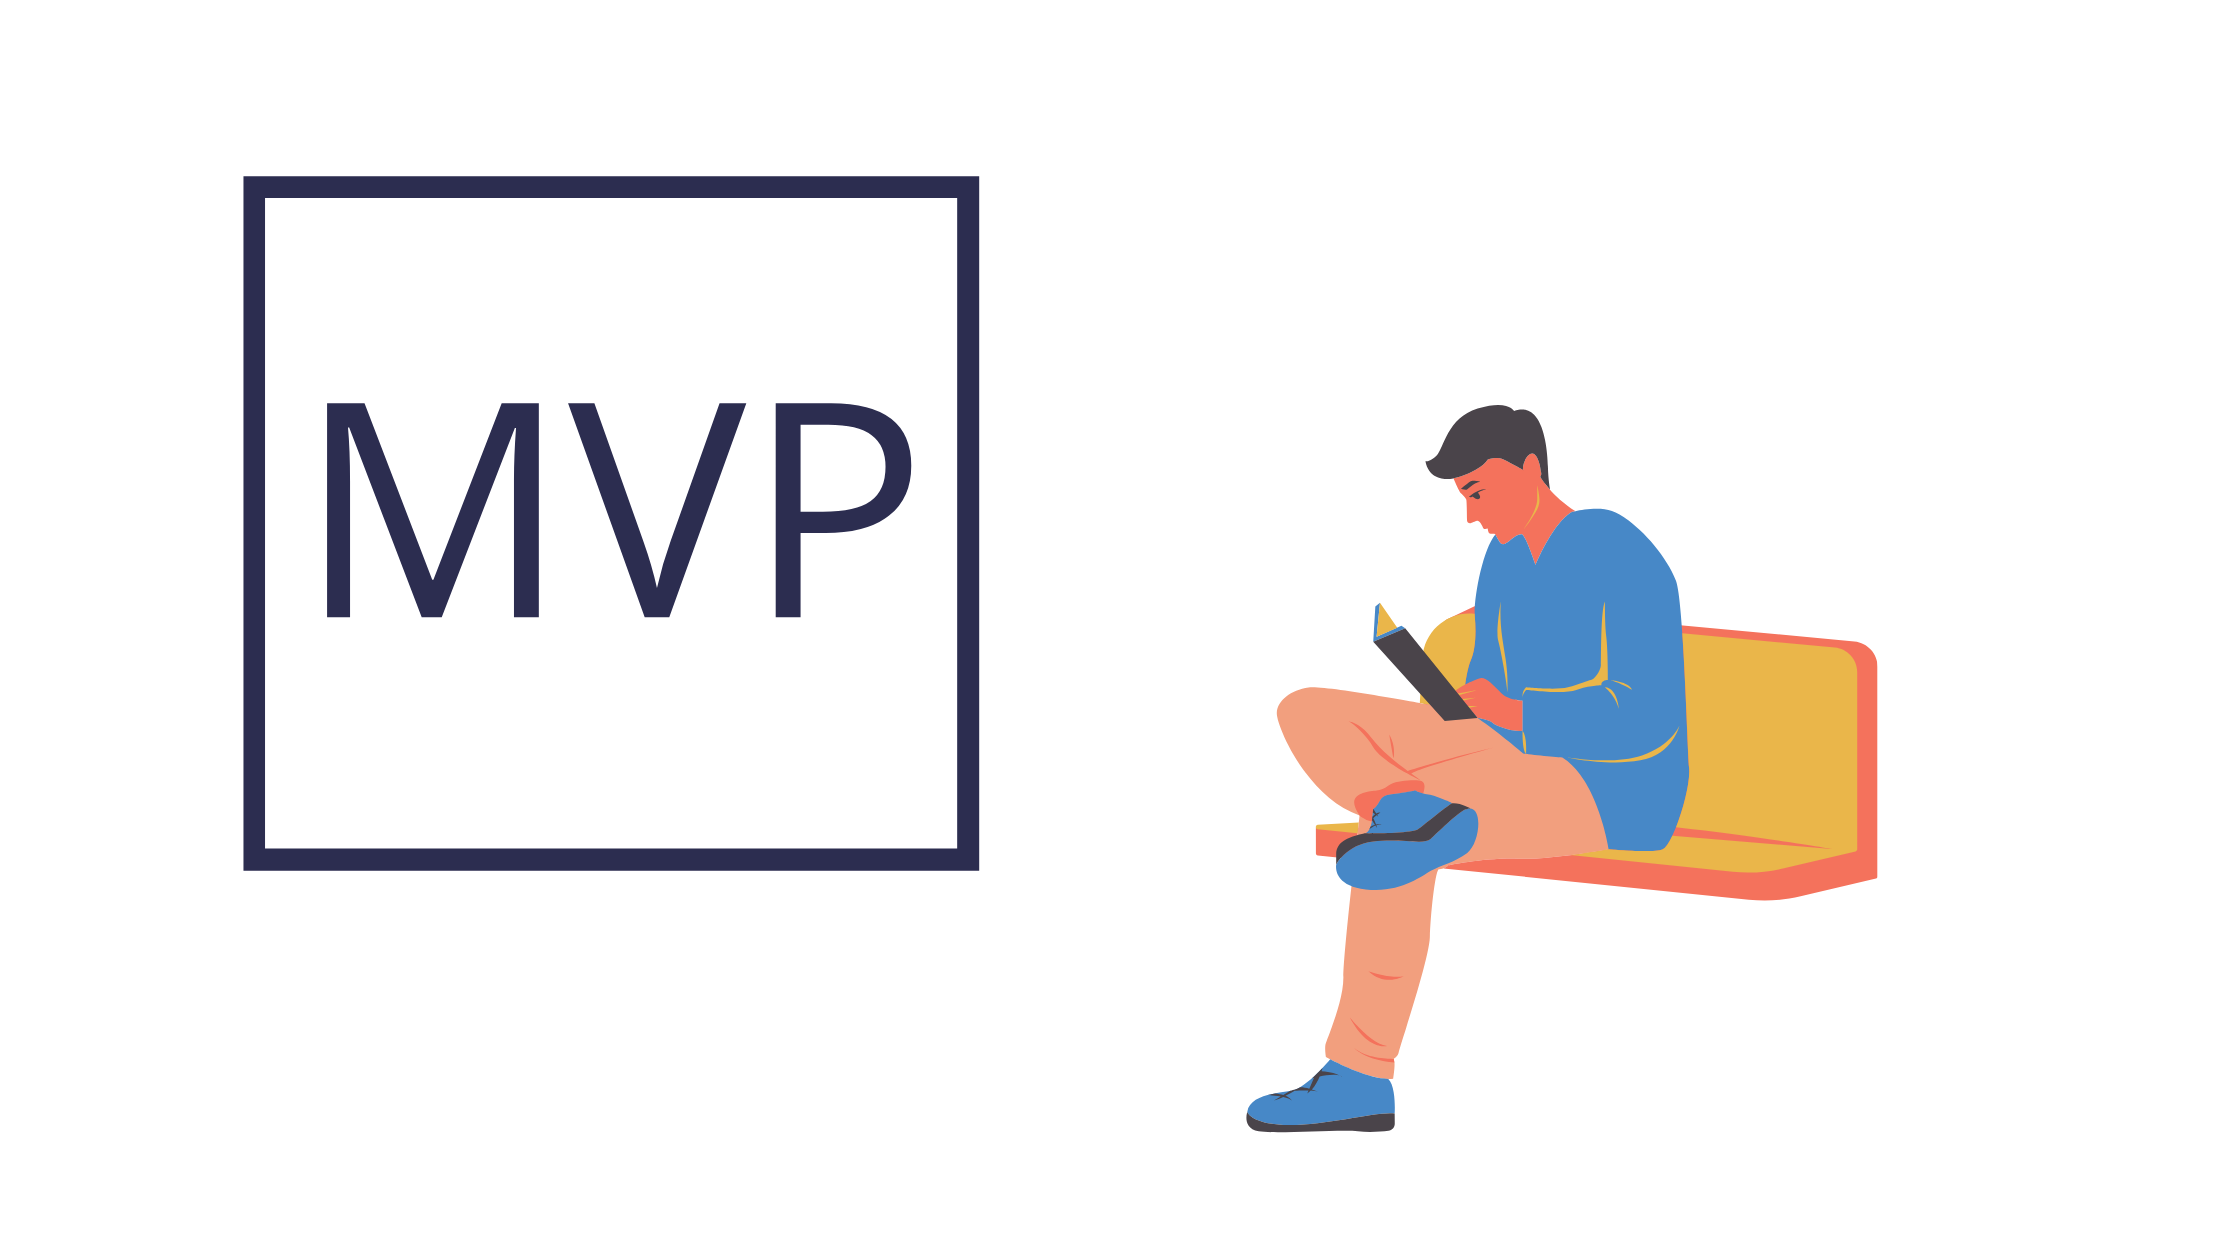 how to build a minimum viable product - what does mvp mean